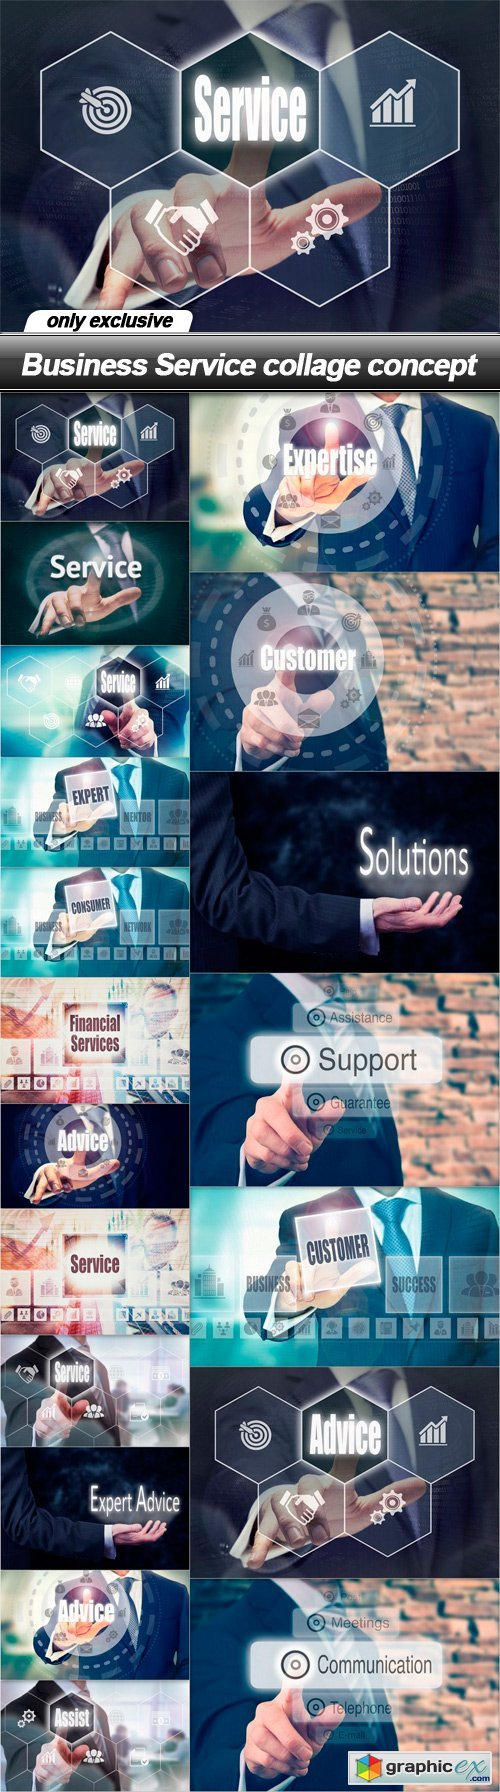 Business Service collage concept - 19 UHQ JPEG